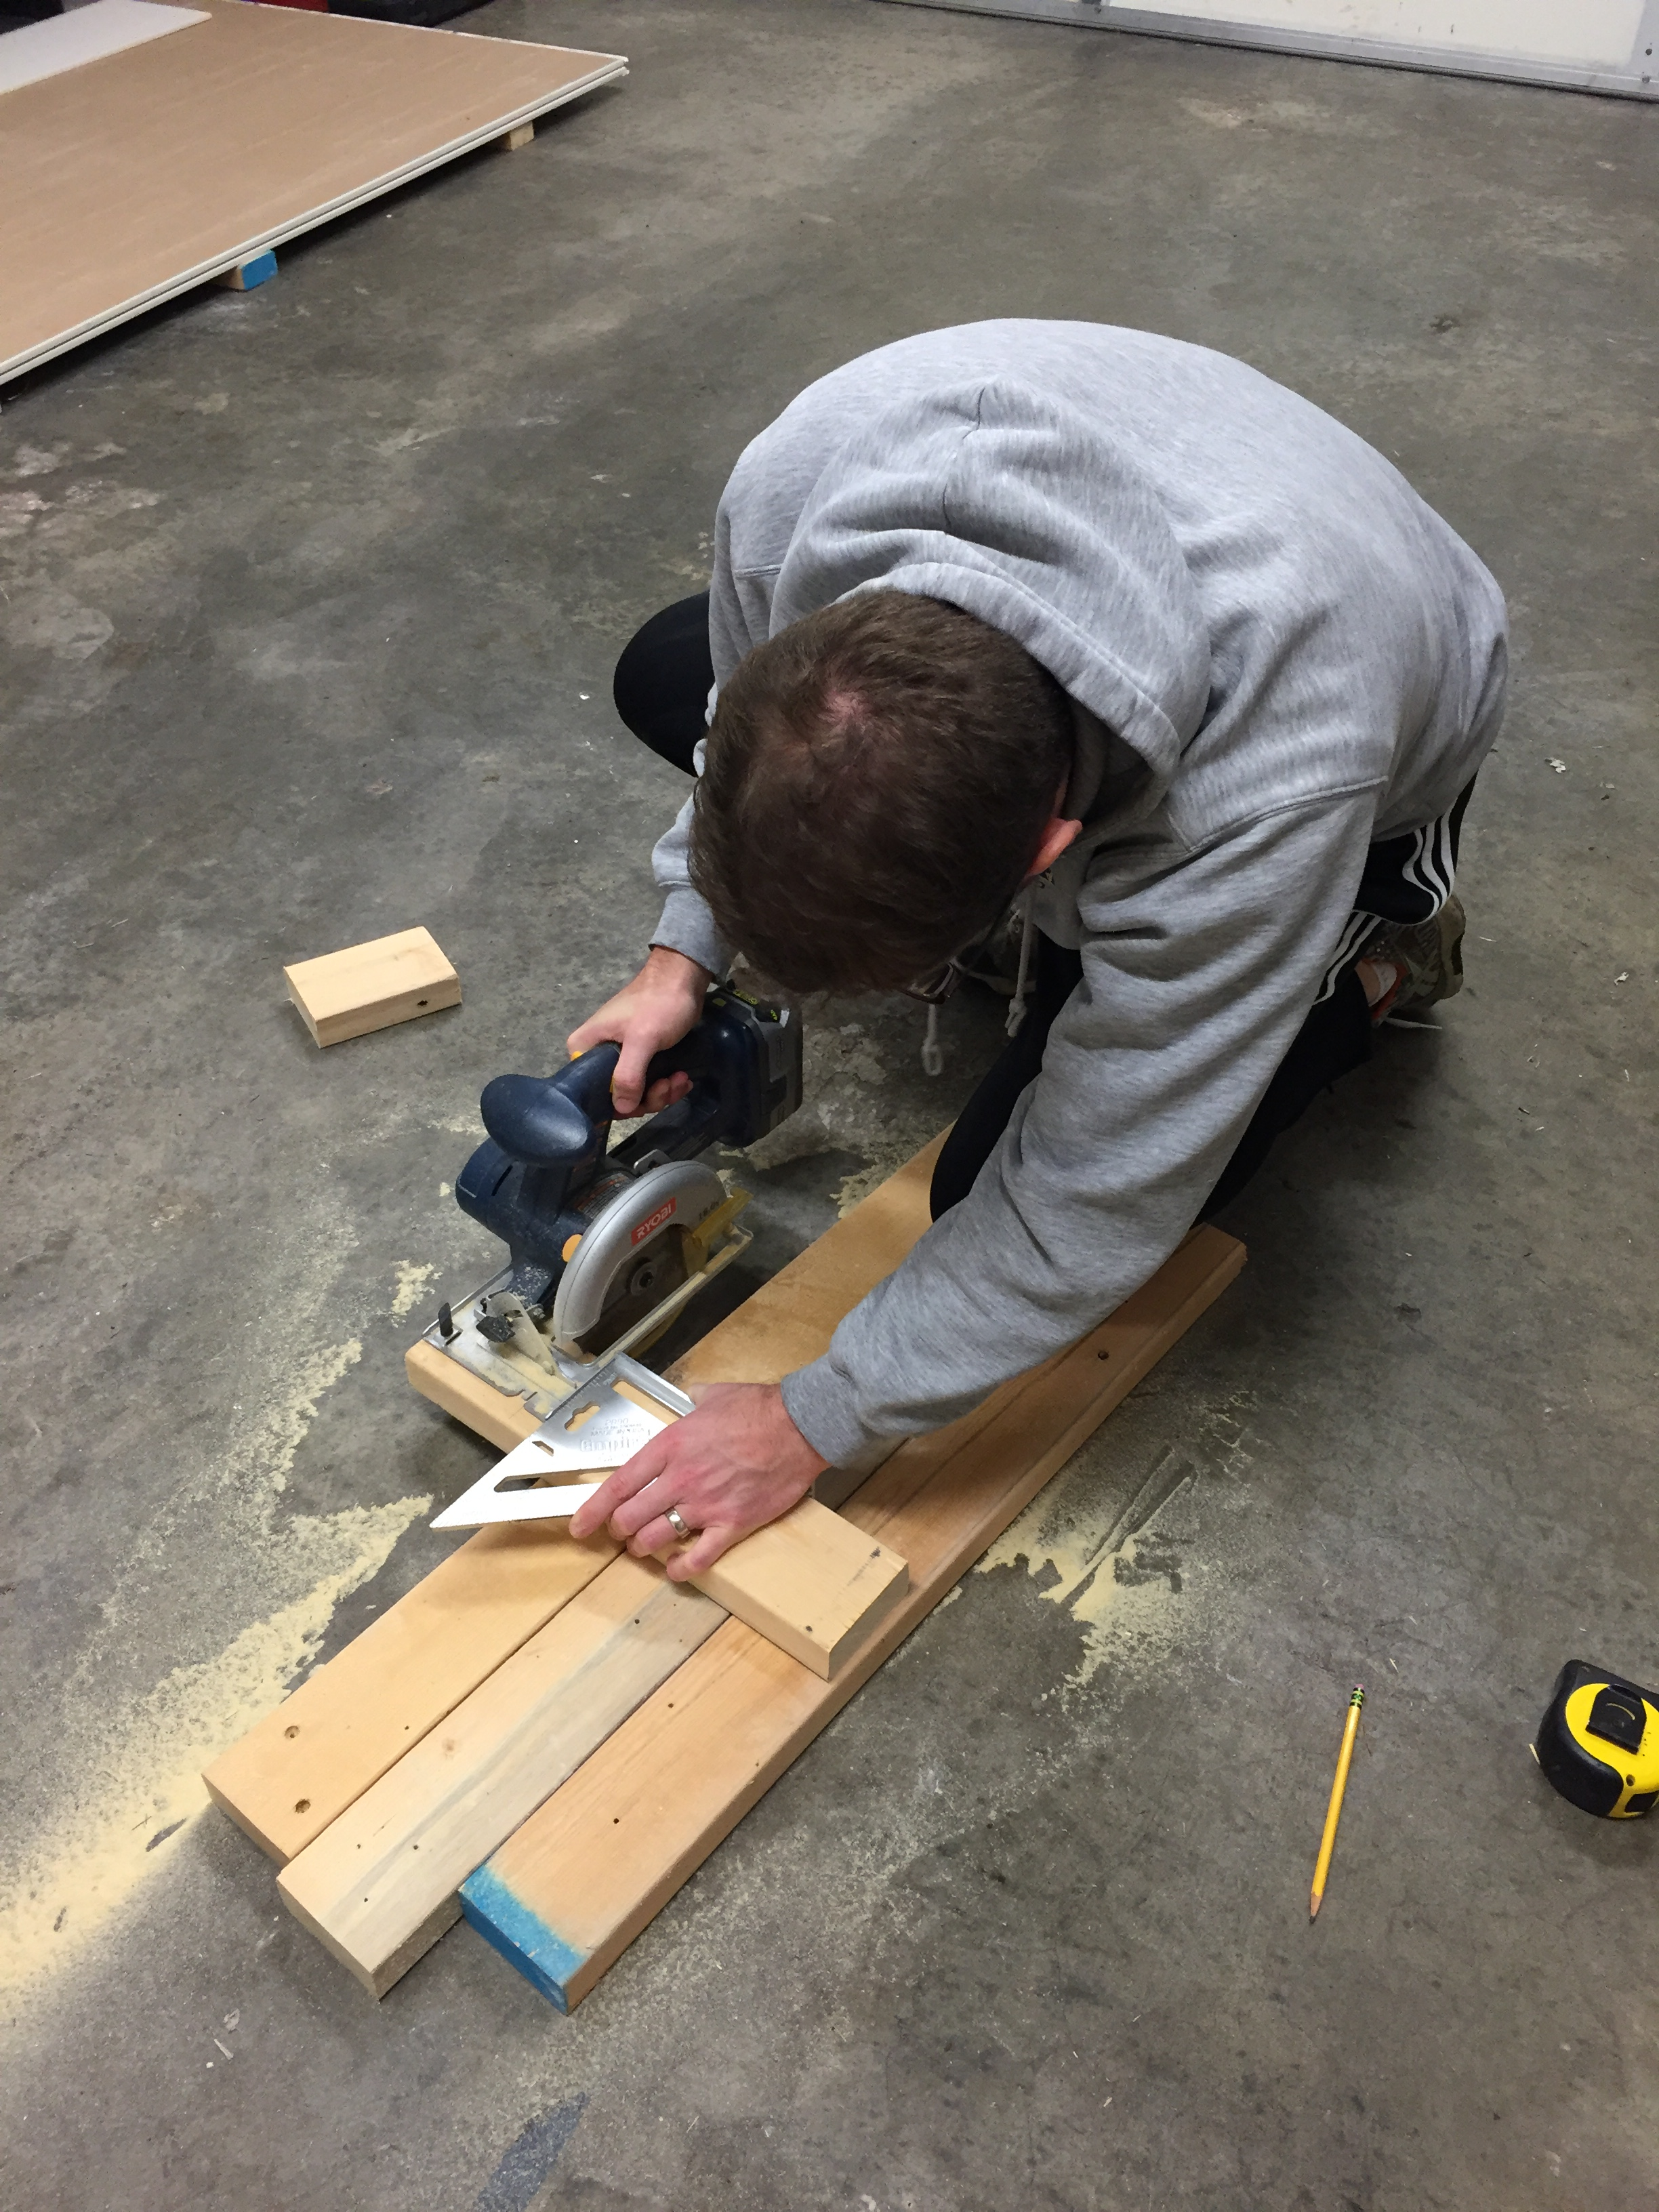 Cutting with a circular saw and speed square